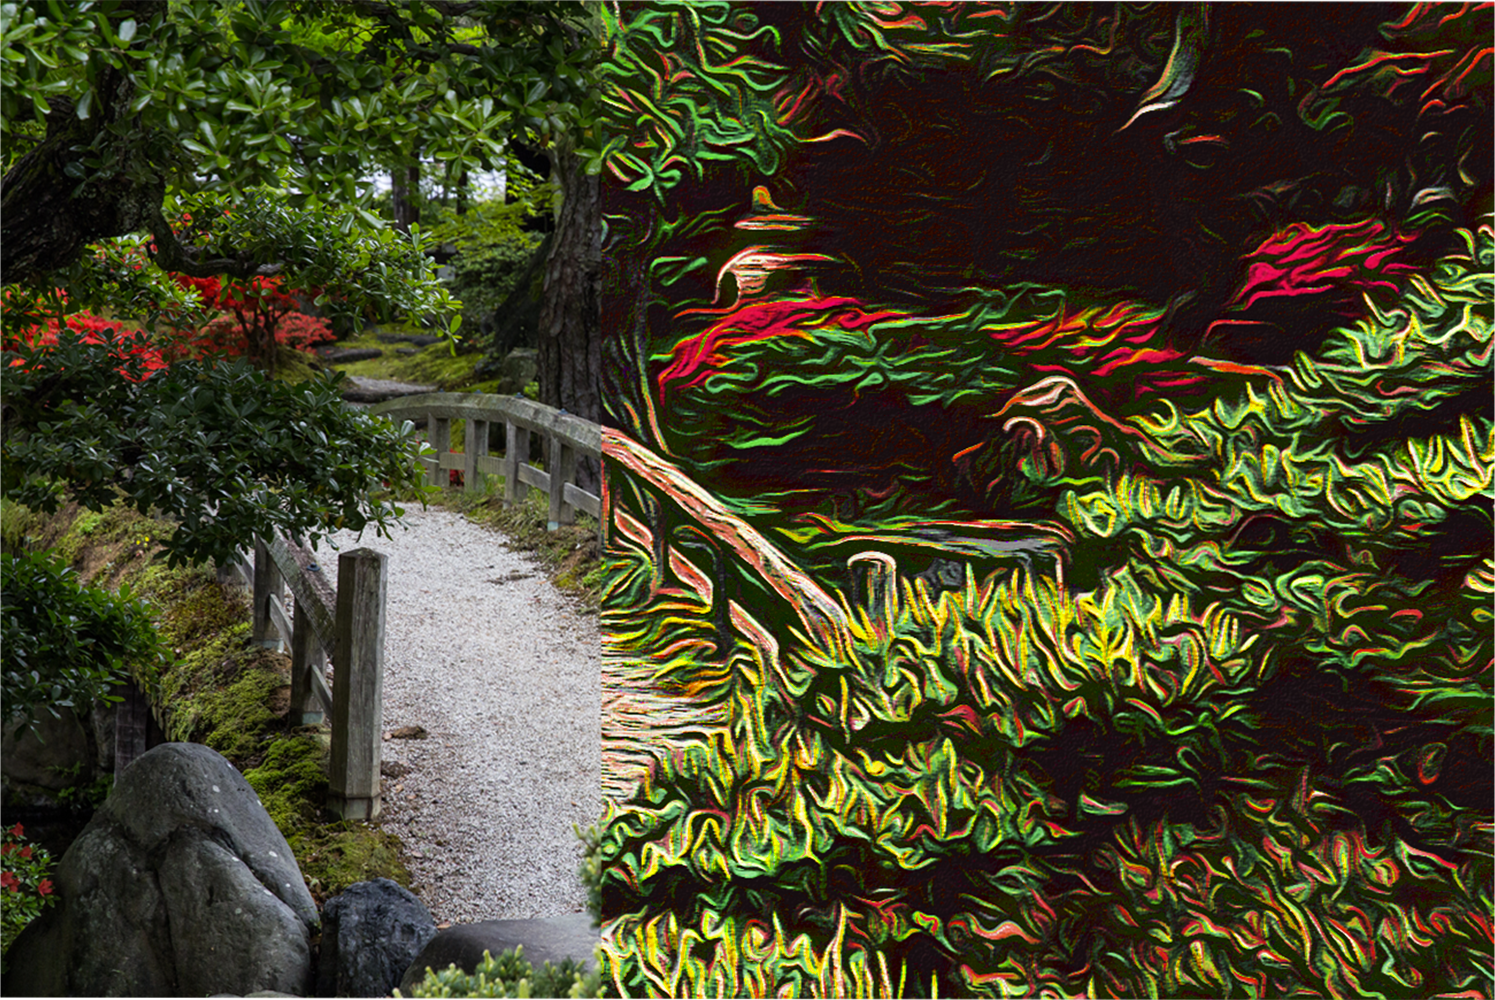 Realistic Digital Painting Effect 2.0 example image 12